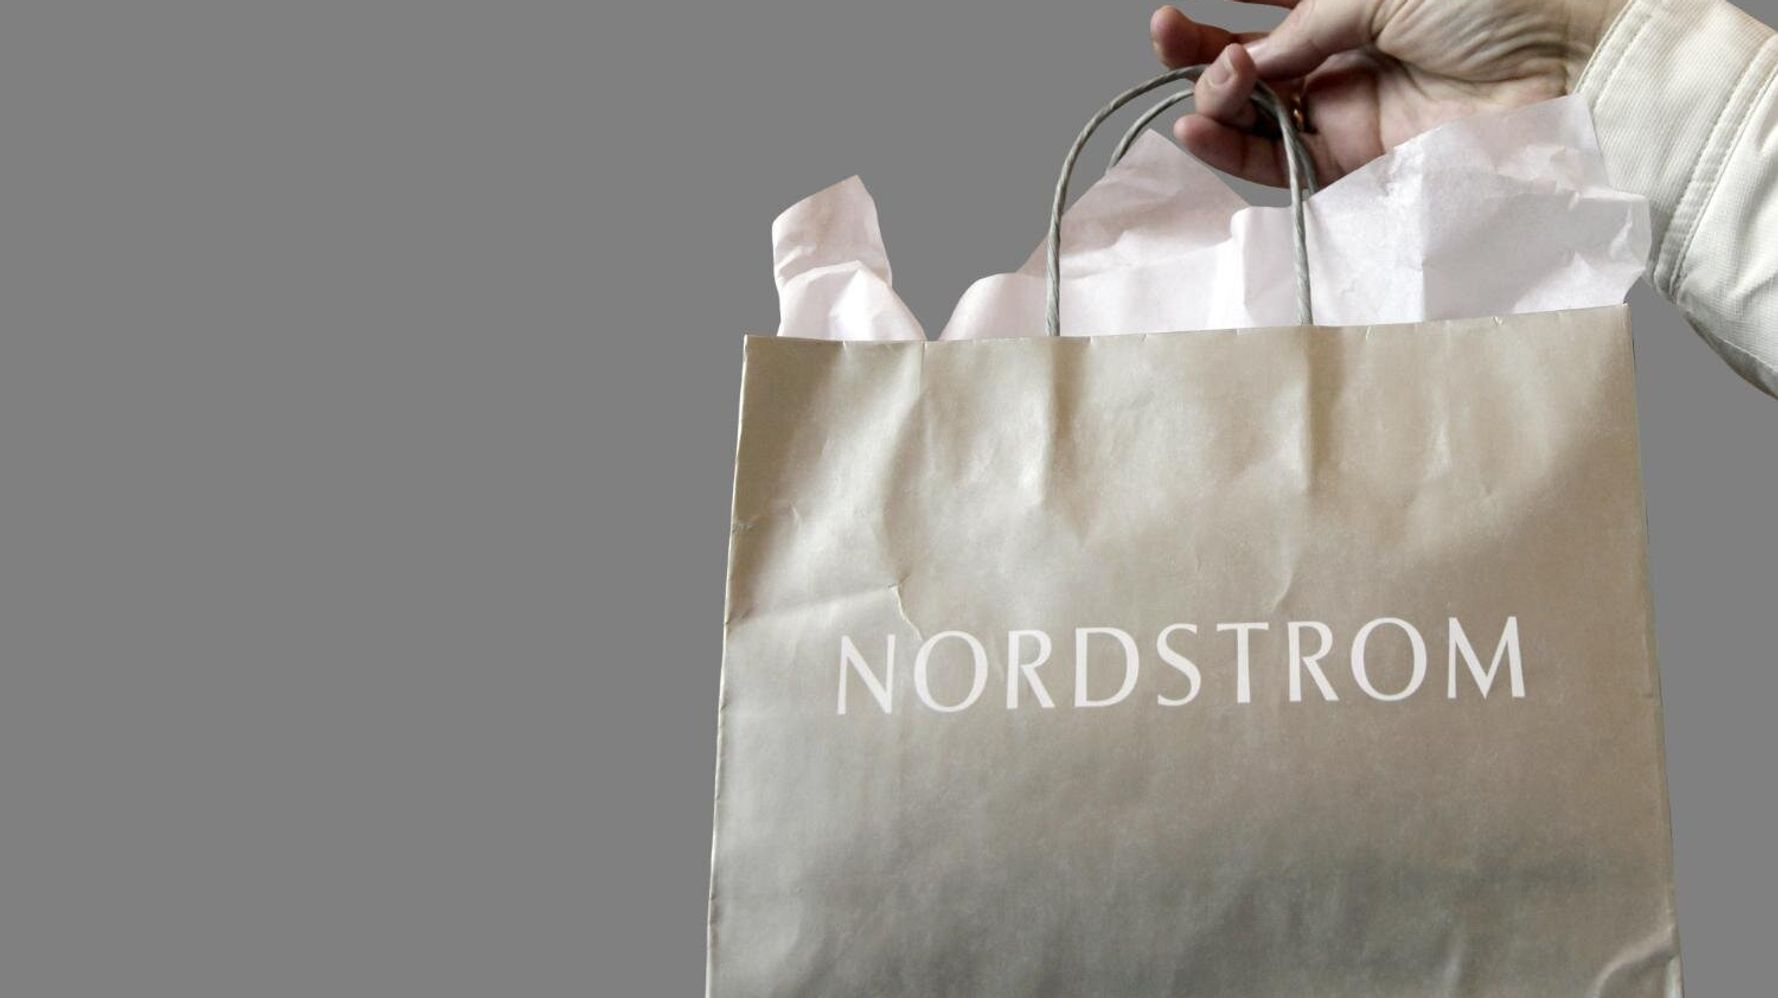 15 Worth-It Products From Nordstrom's Clearance Sale 1